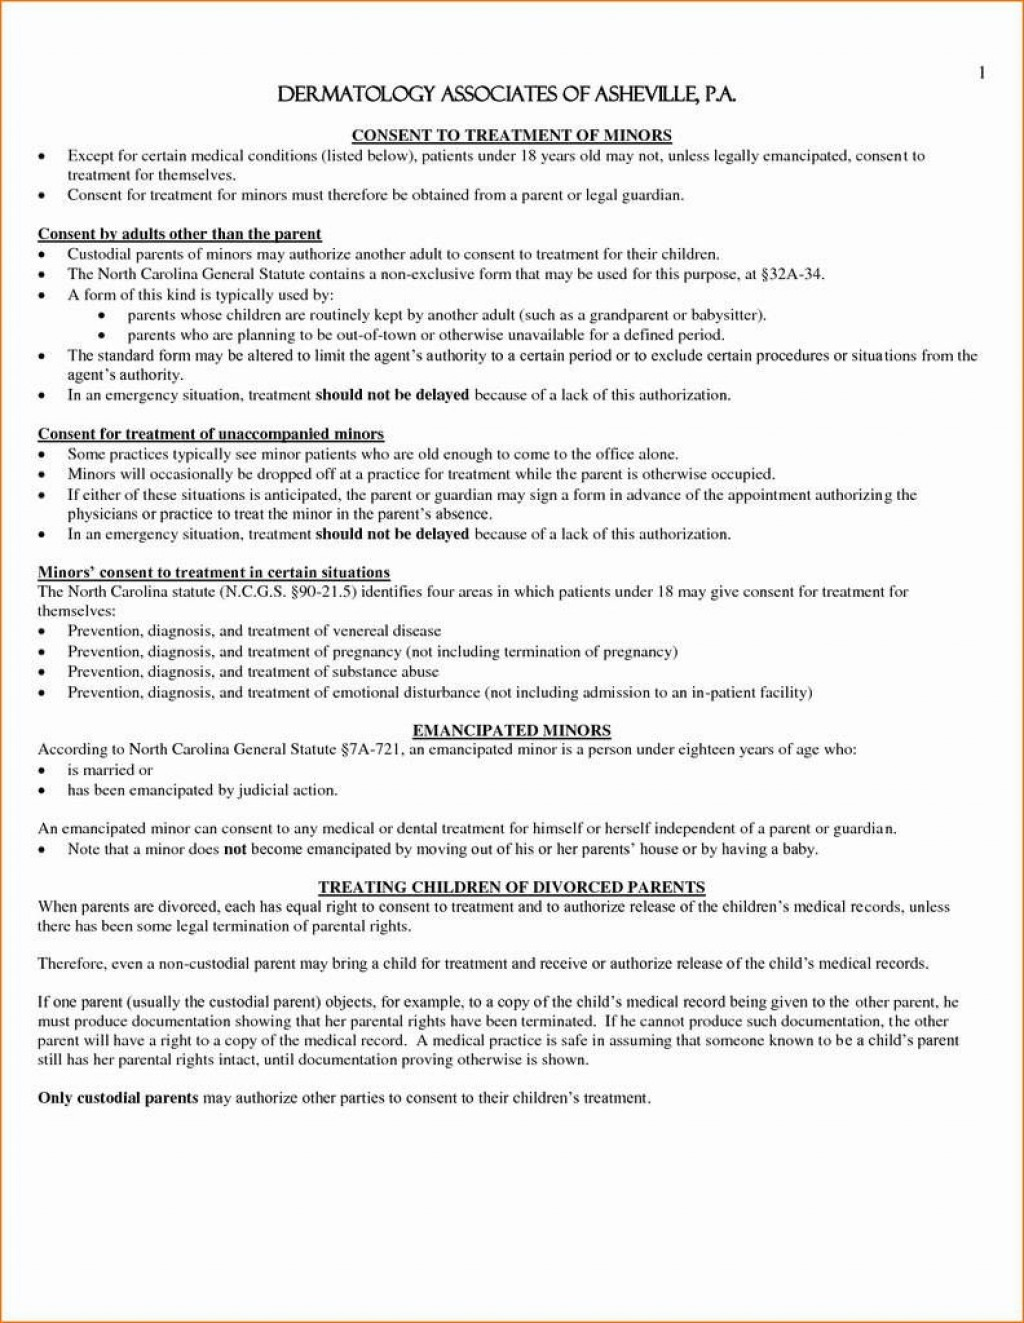 003 Amazing Medical Treatment Authorization And Consent Form Template Idea Large